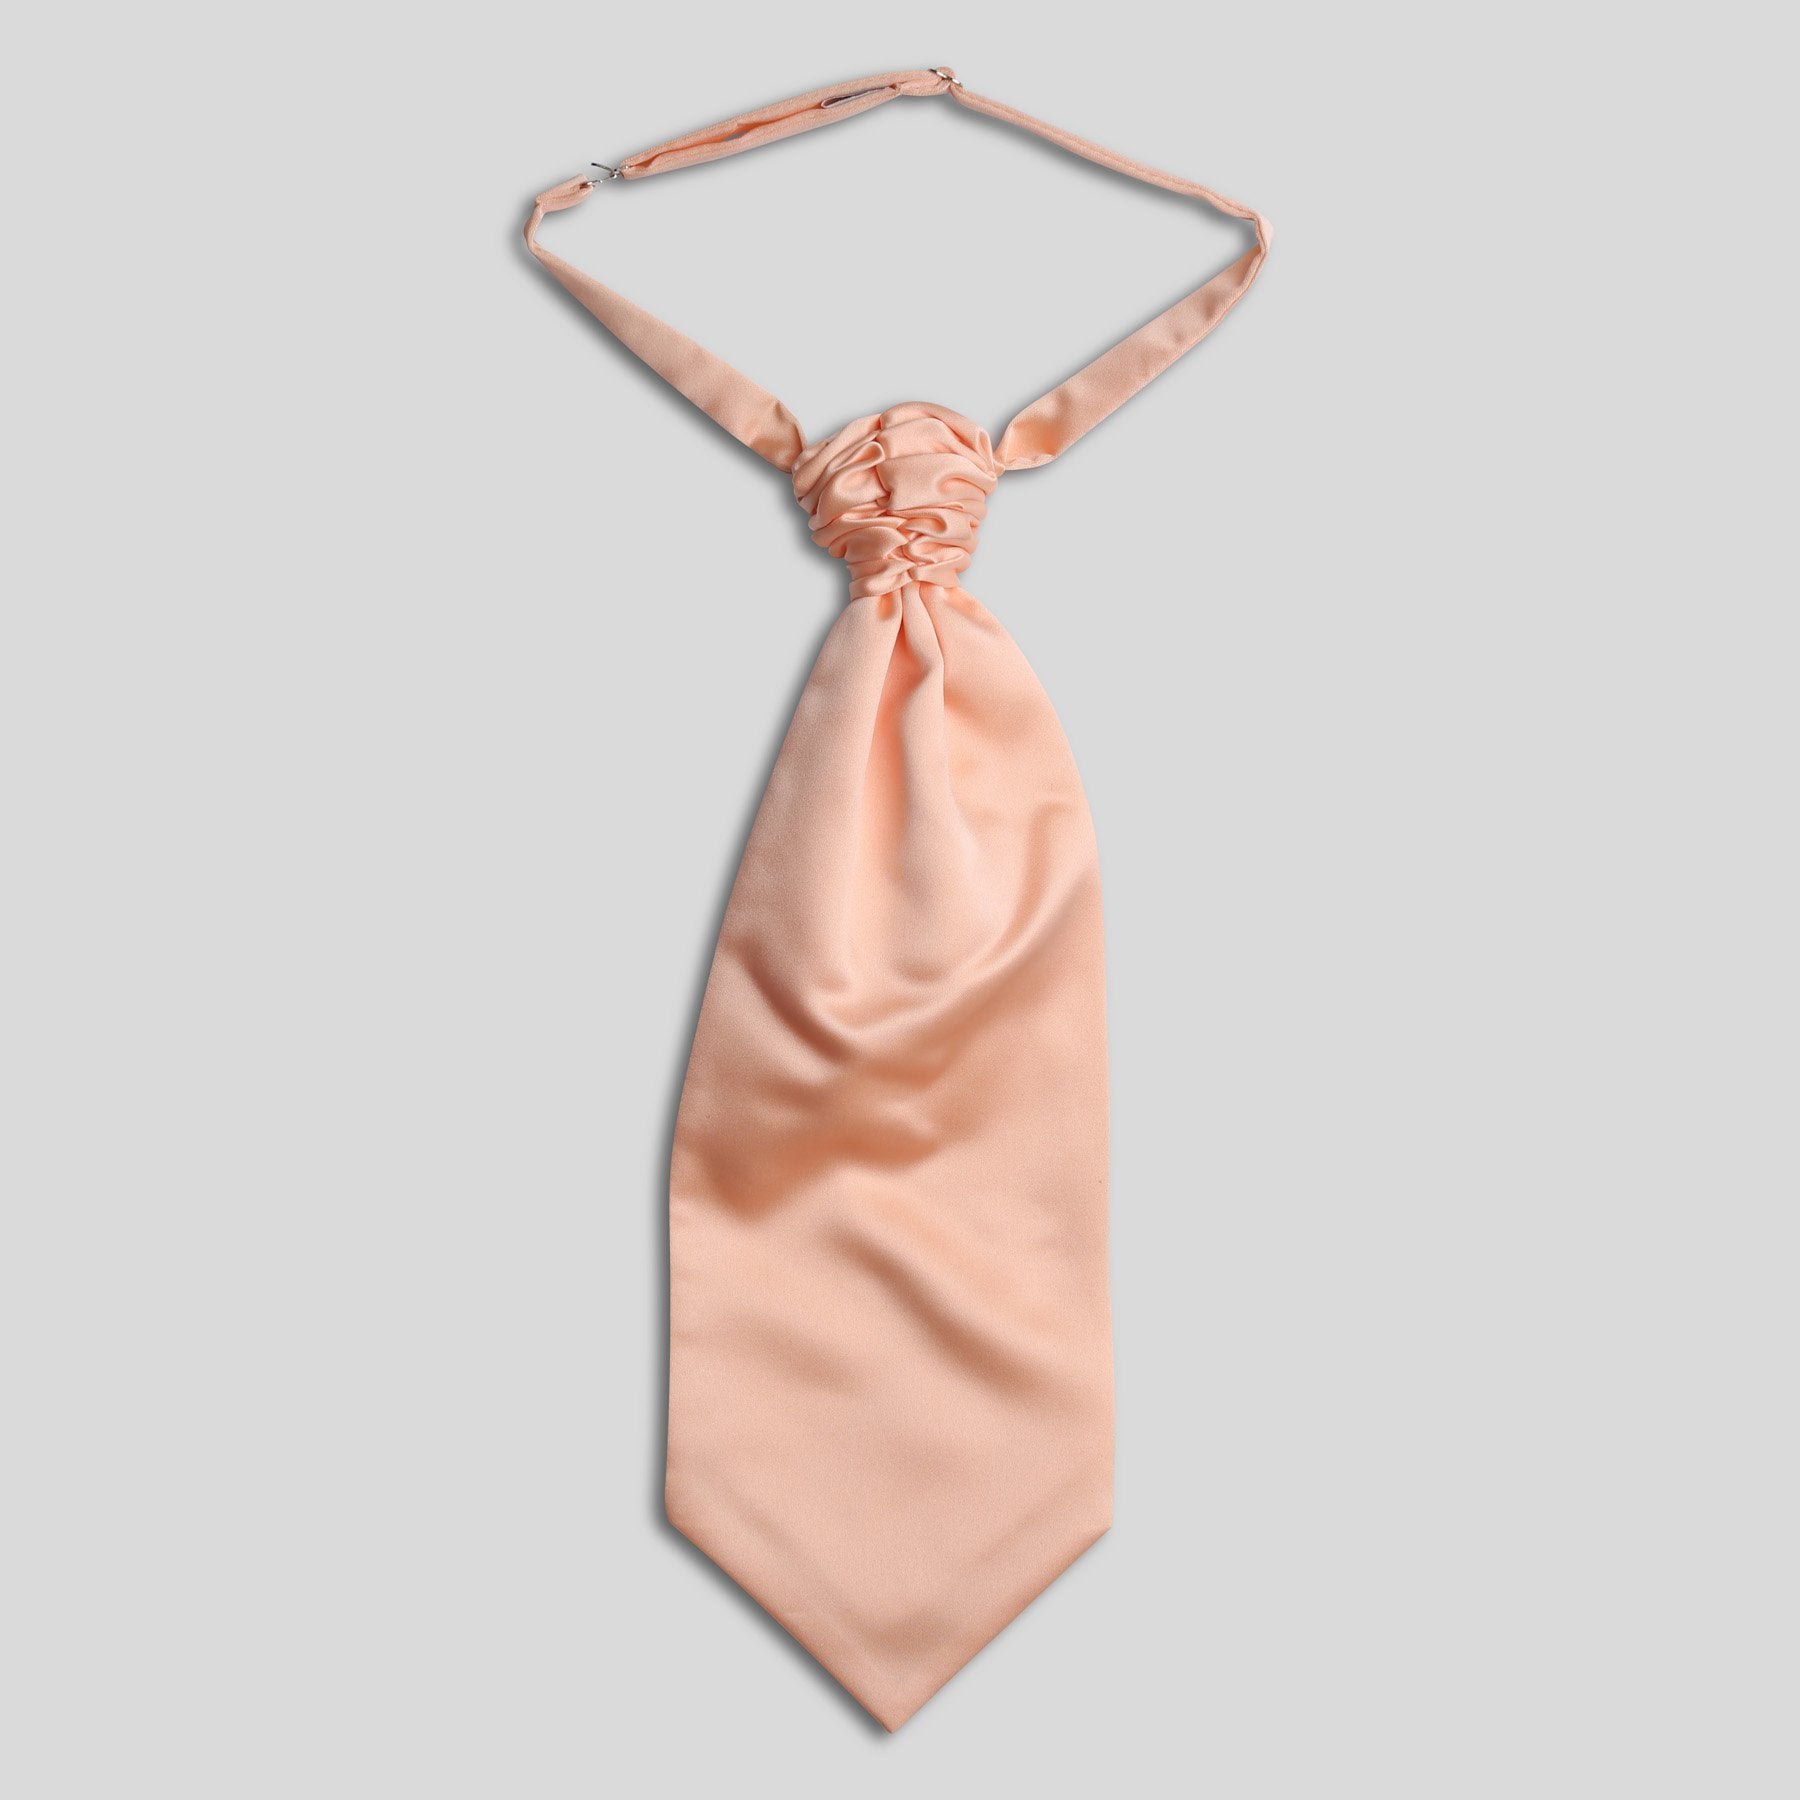 CS0030-48-Folkespeare-Peach-Satin-Scrunchie-Cravat-1